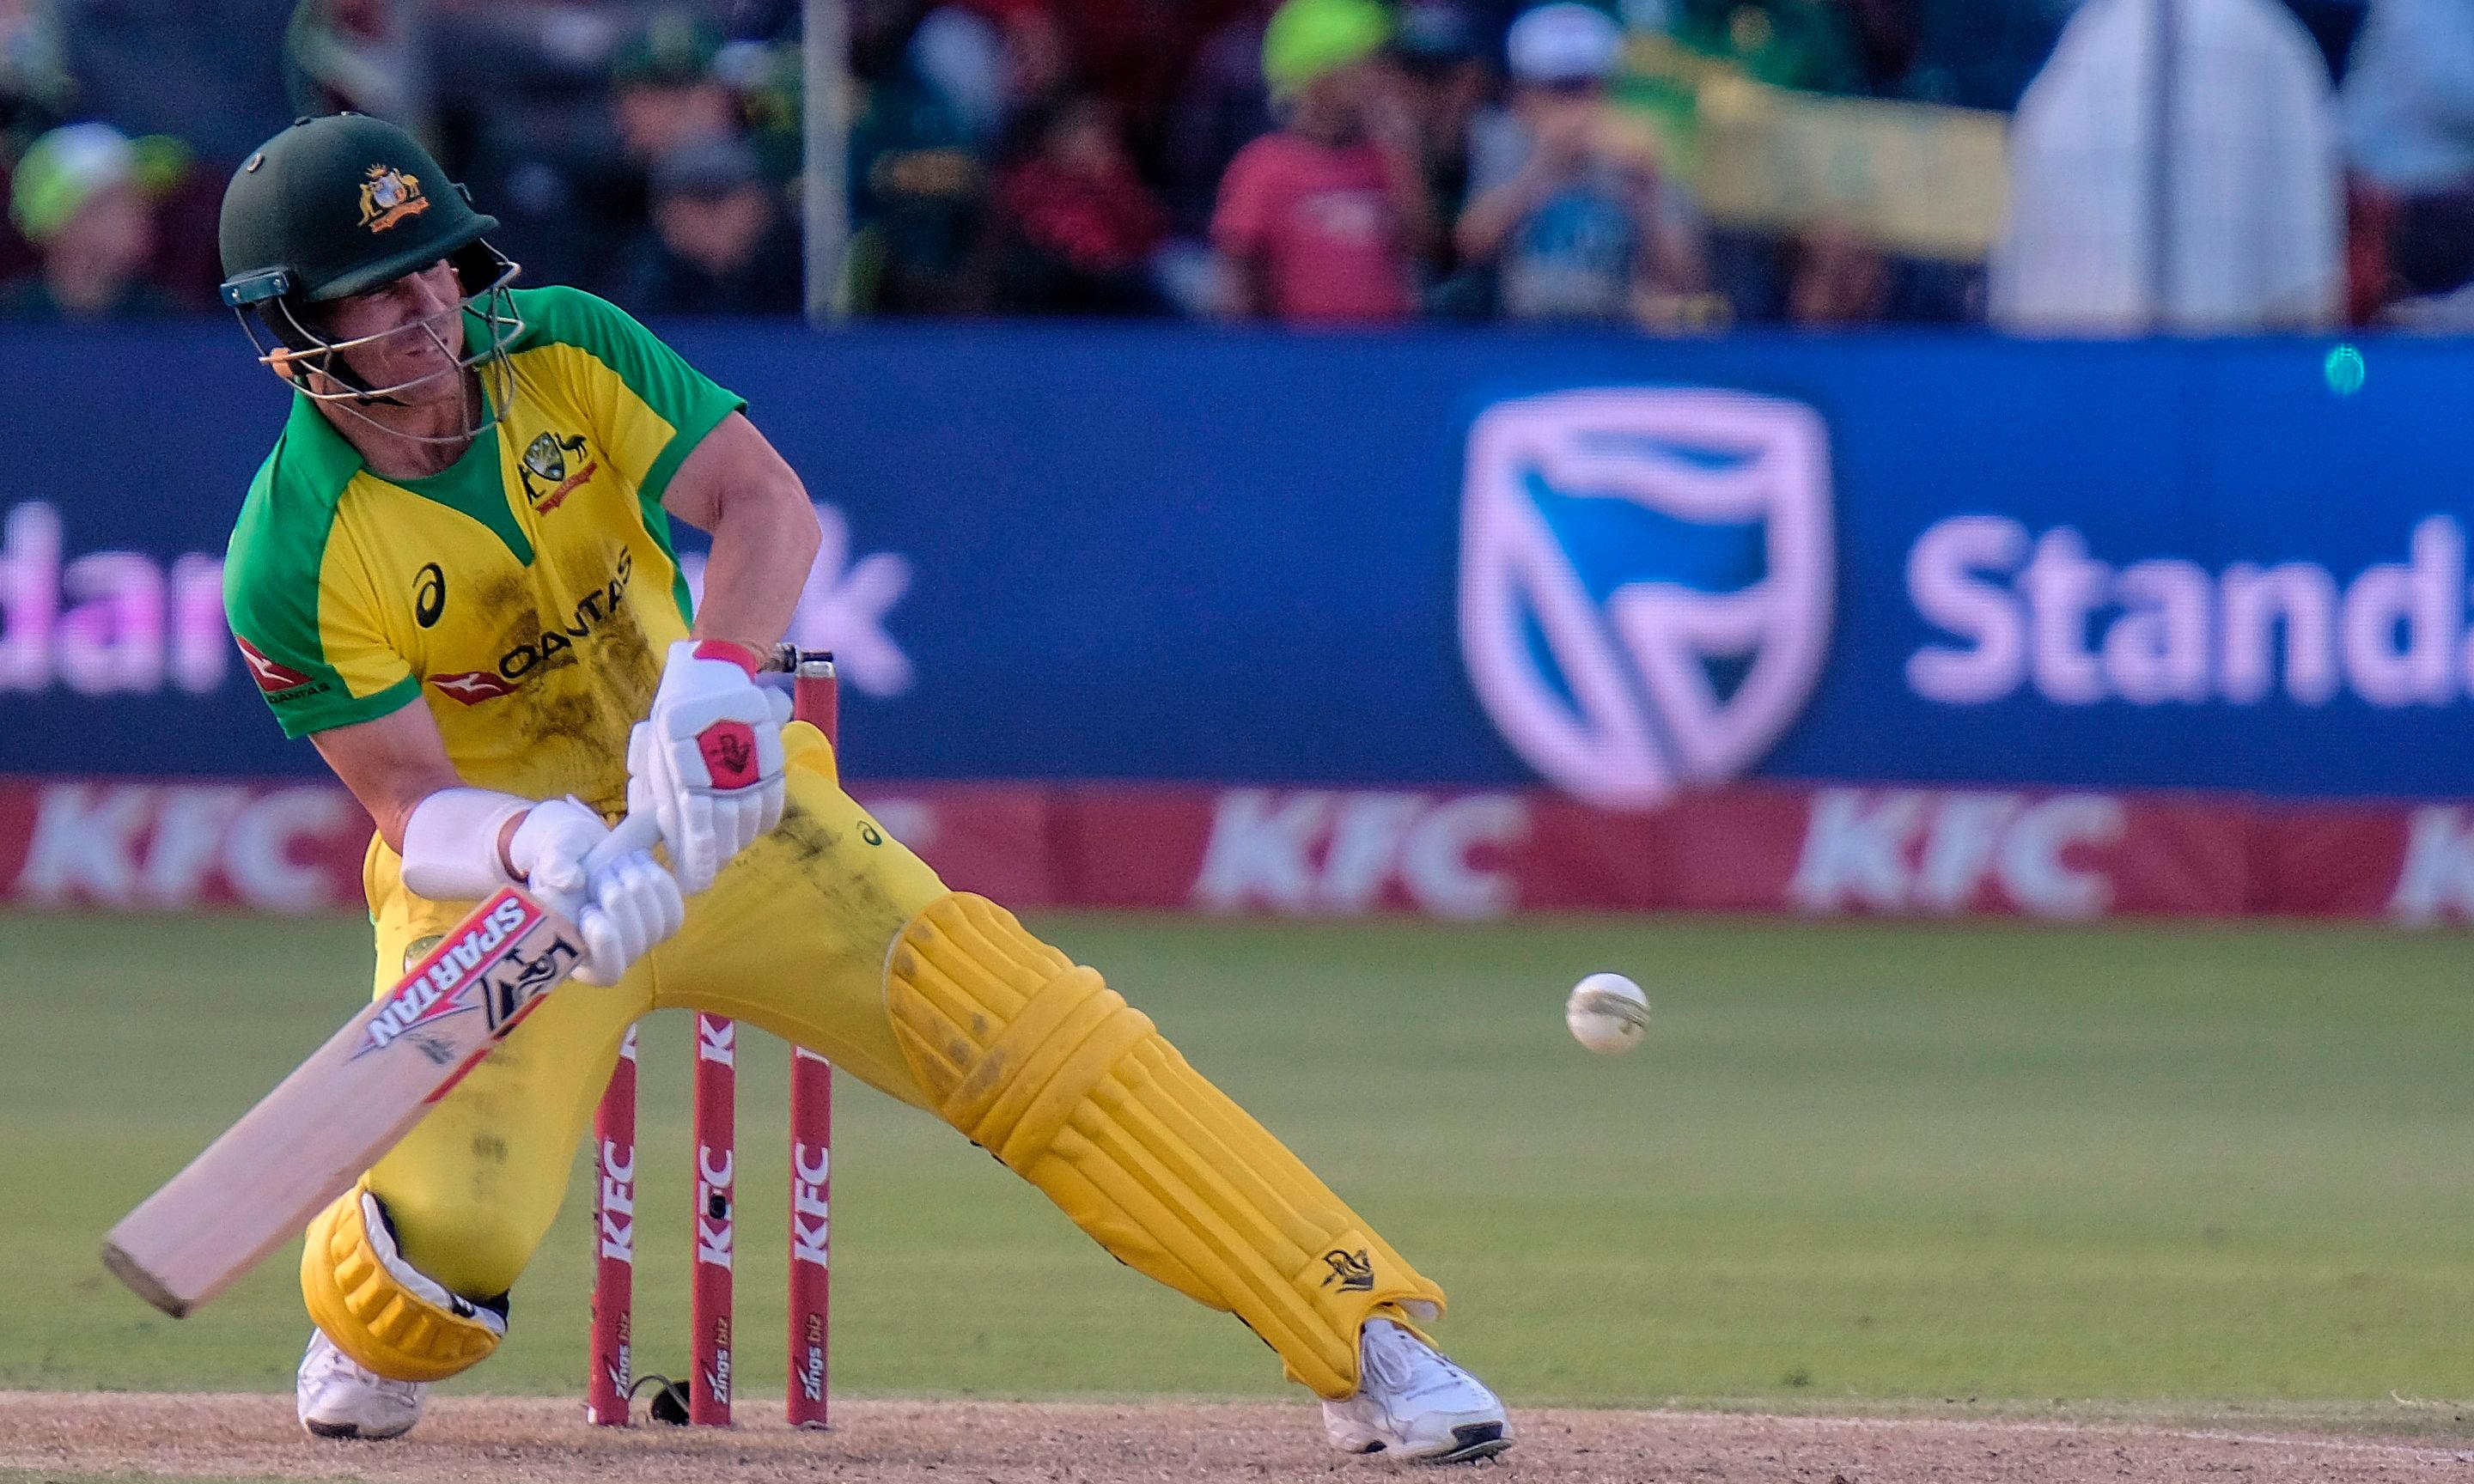 David Warner last man standing as Australia collapse in South Africa T20 defeat